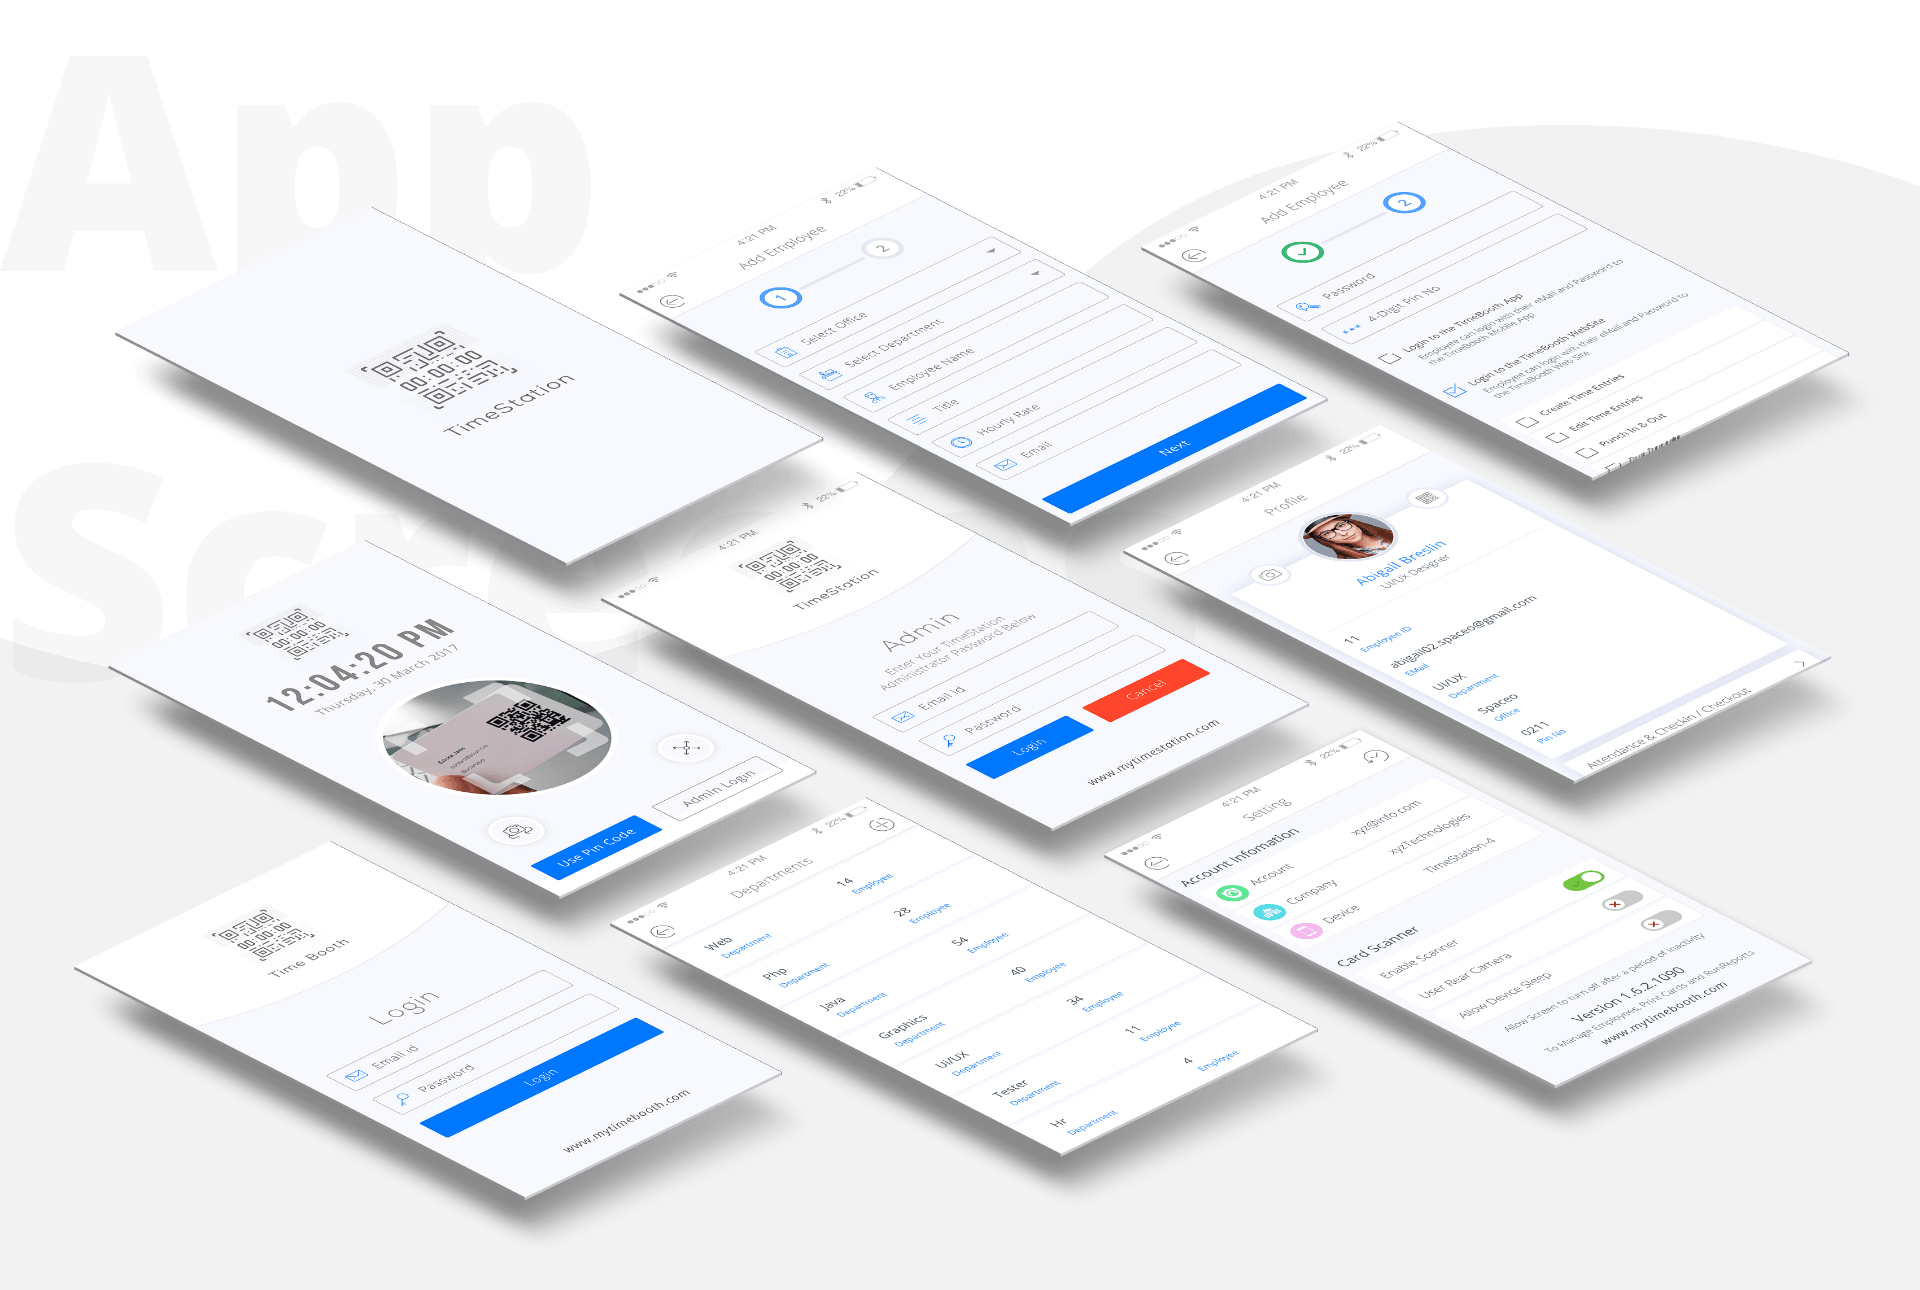 UI UX for Mobile Apps